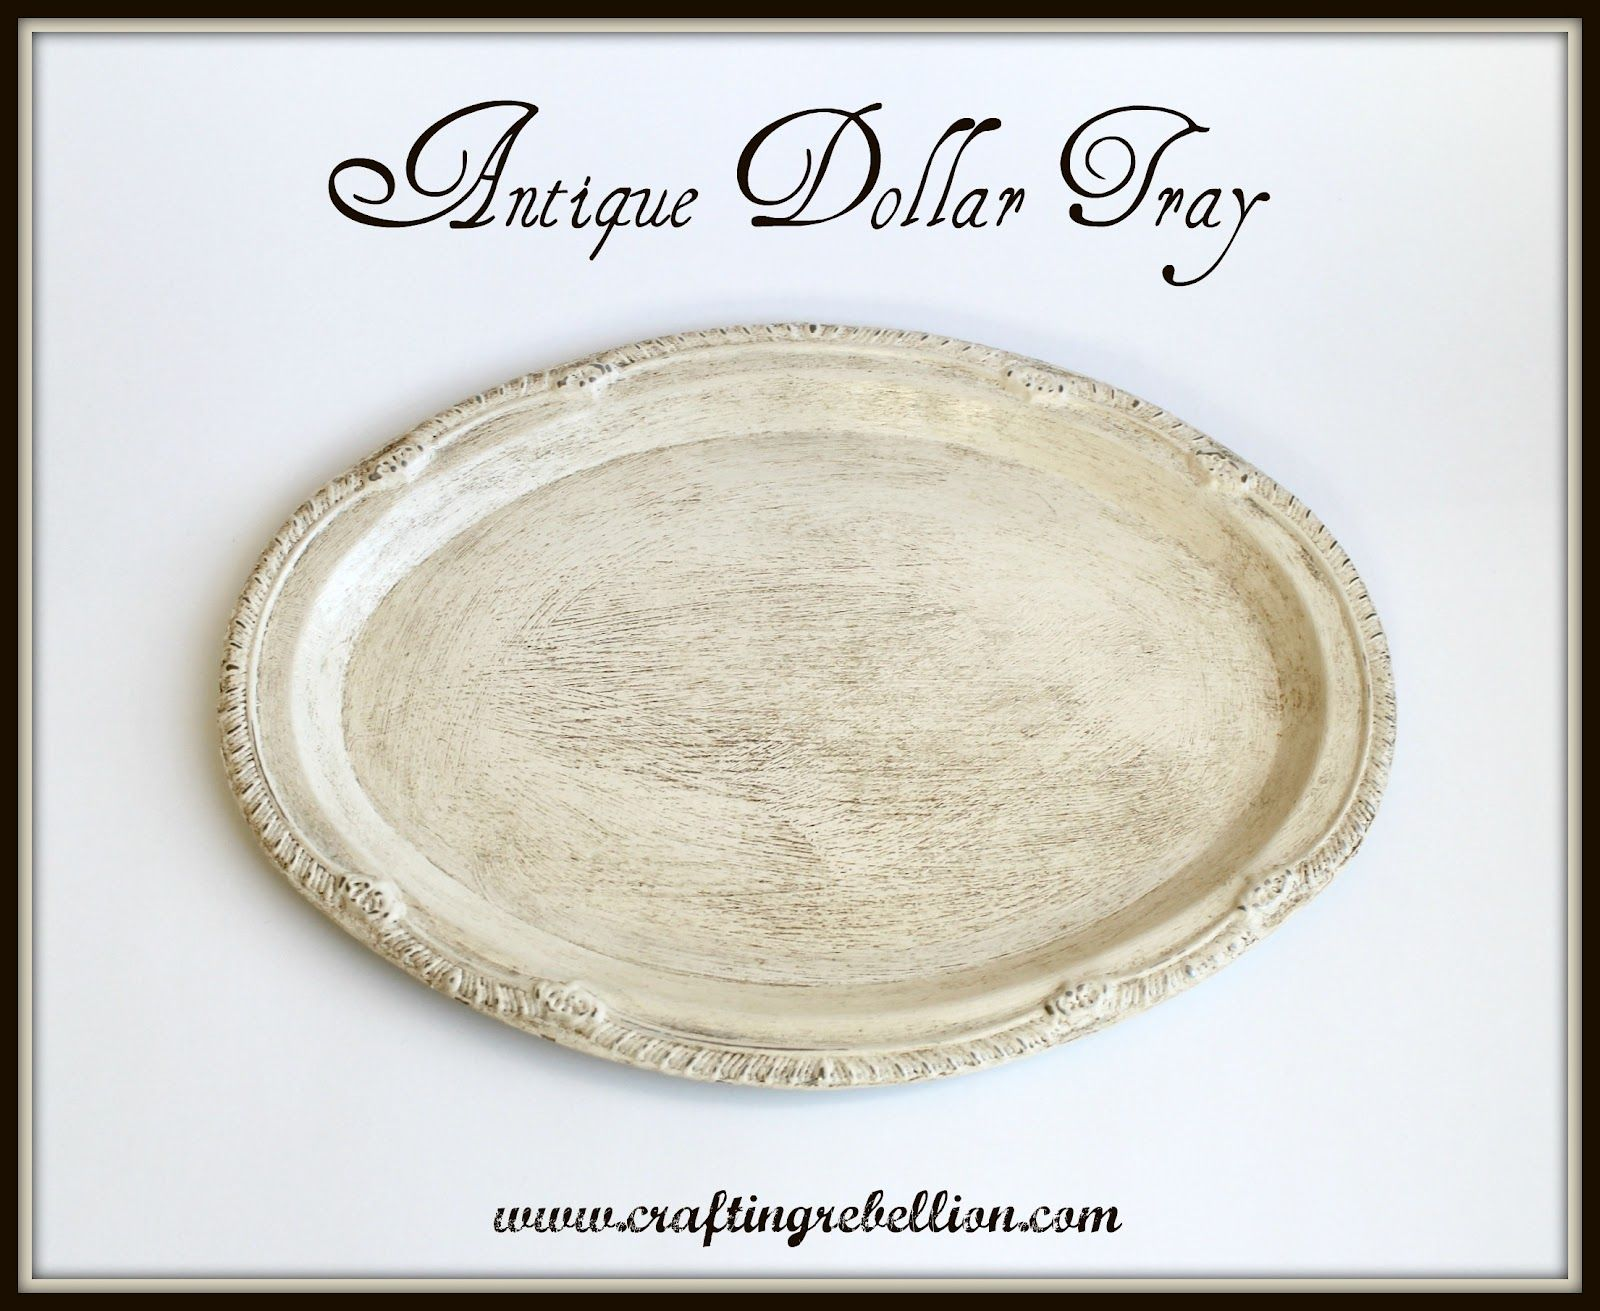 Crafting Rebellion: Antique Dollar Store Tray